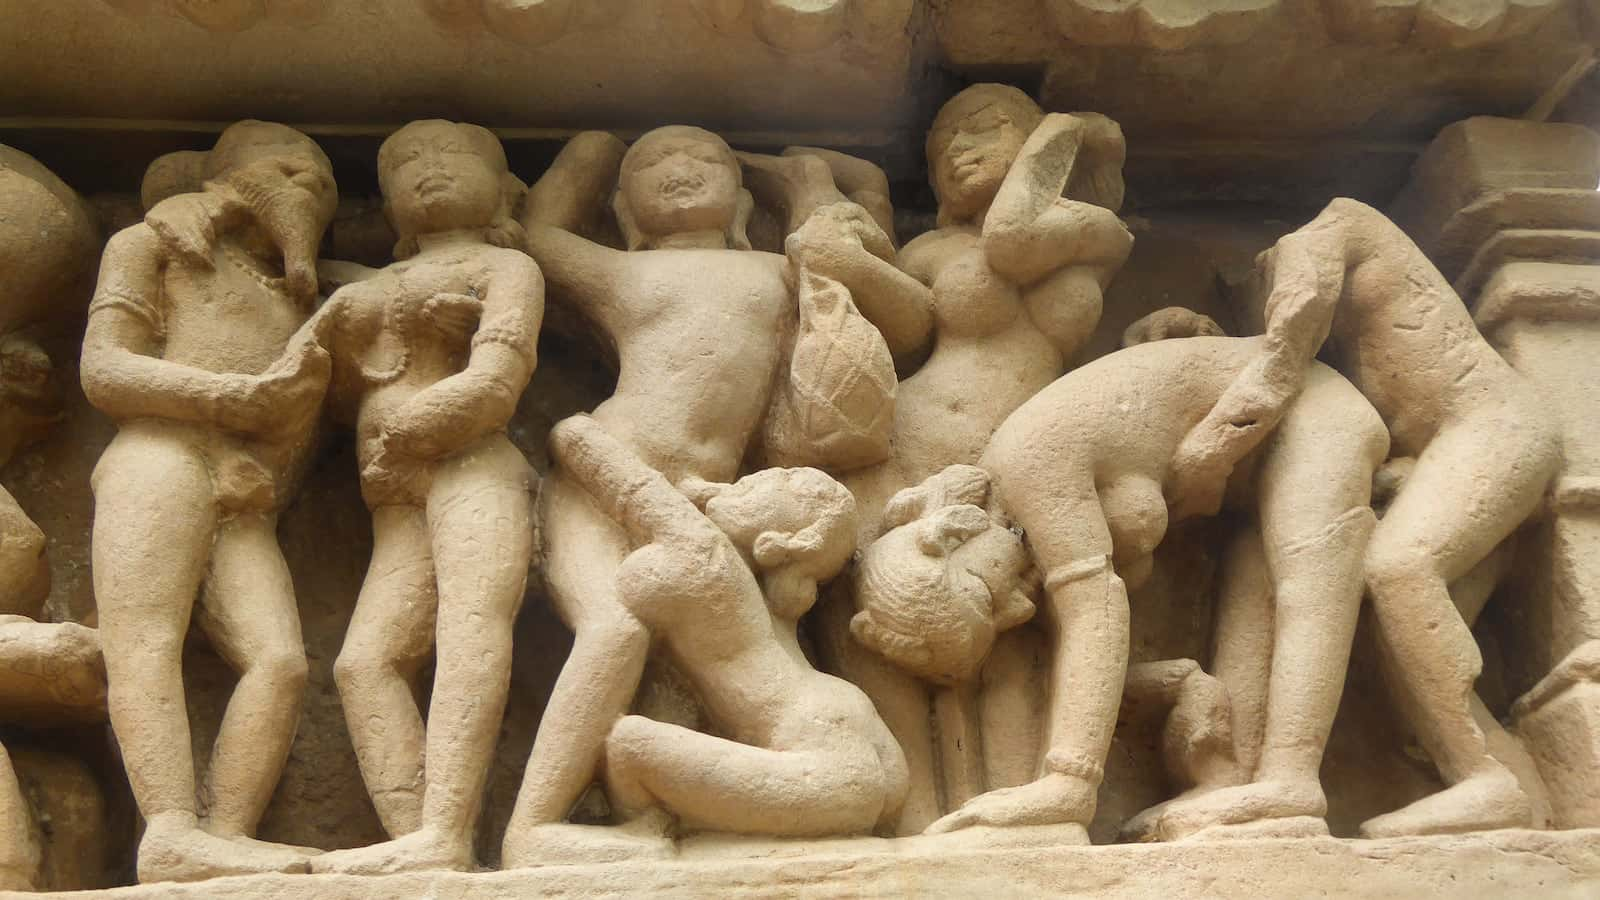 The very insightful erotic carvings at the Khajuraho Temples